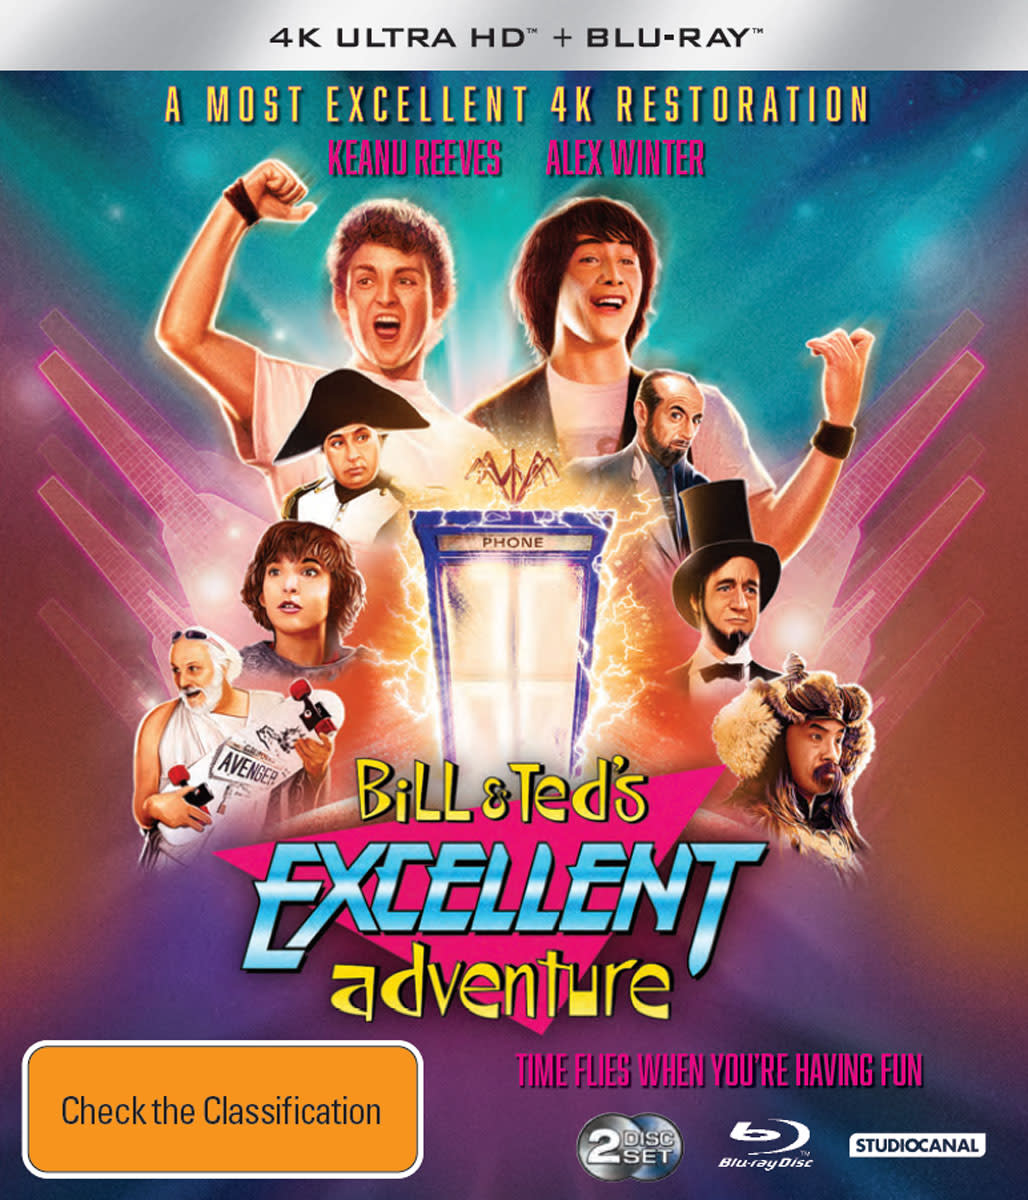 Classics Remastered - Bill & Ted's Excellent Adventure (4K Ultra HD + Blu-ray) [UHD]